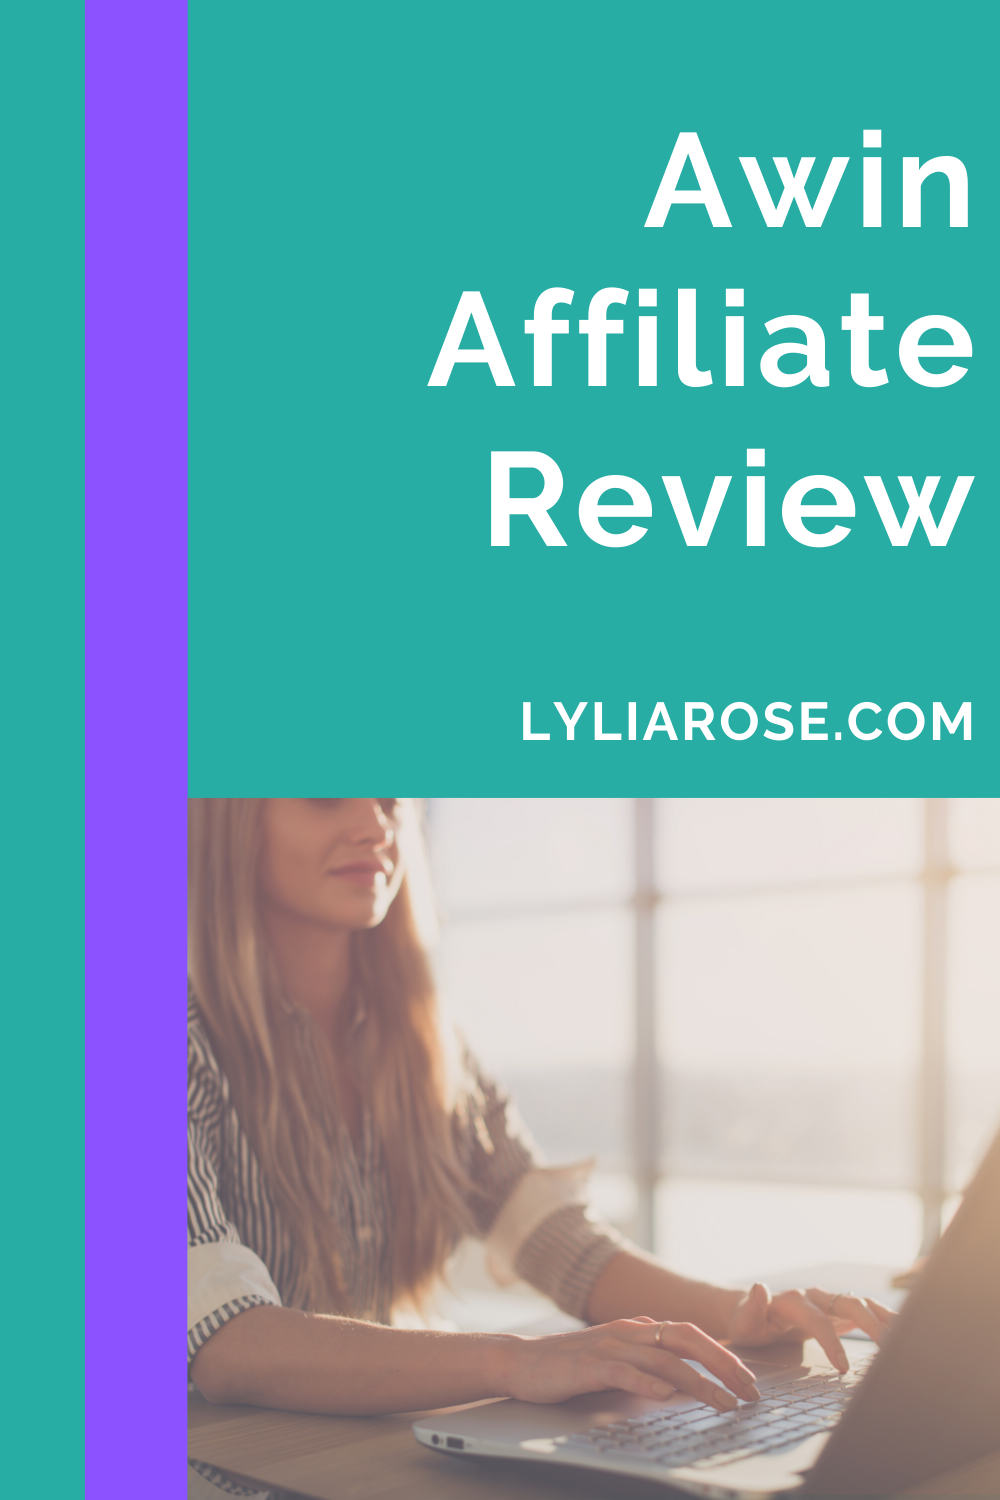 Awin Affiliate Review